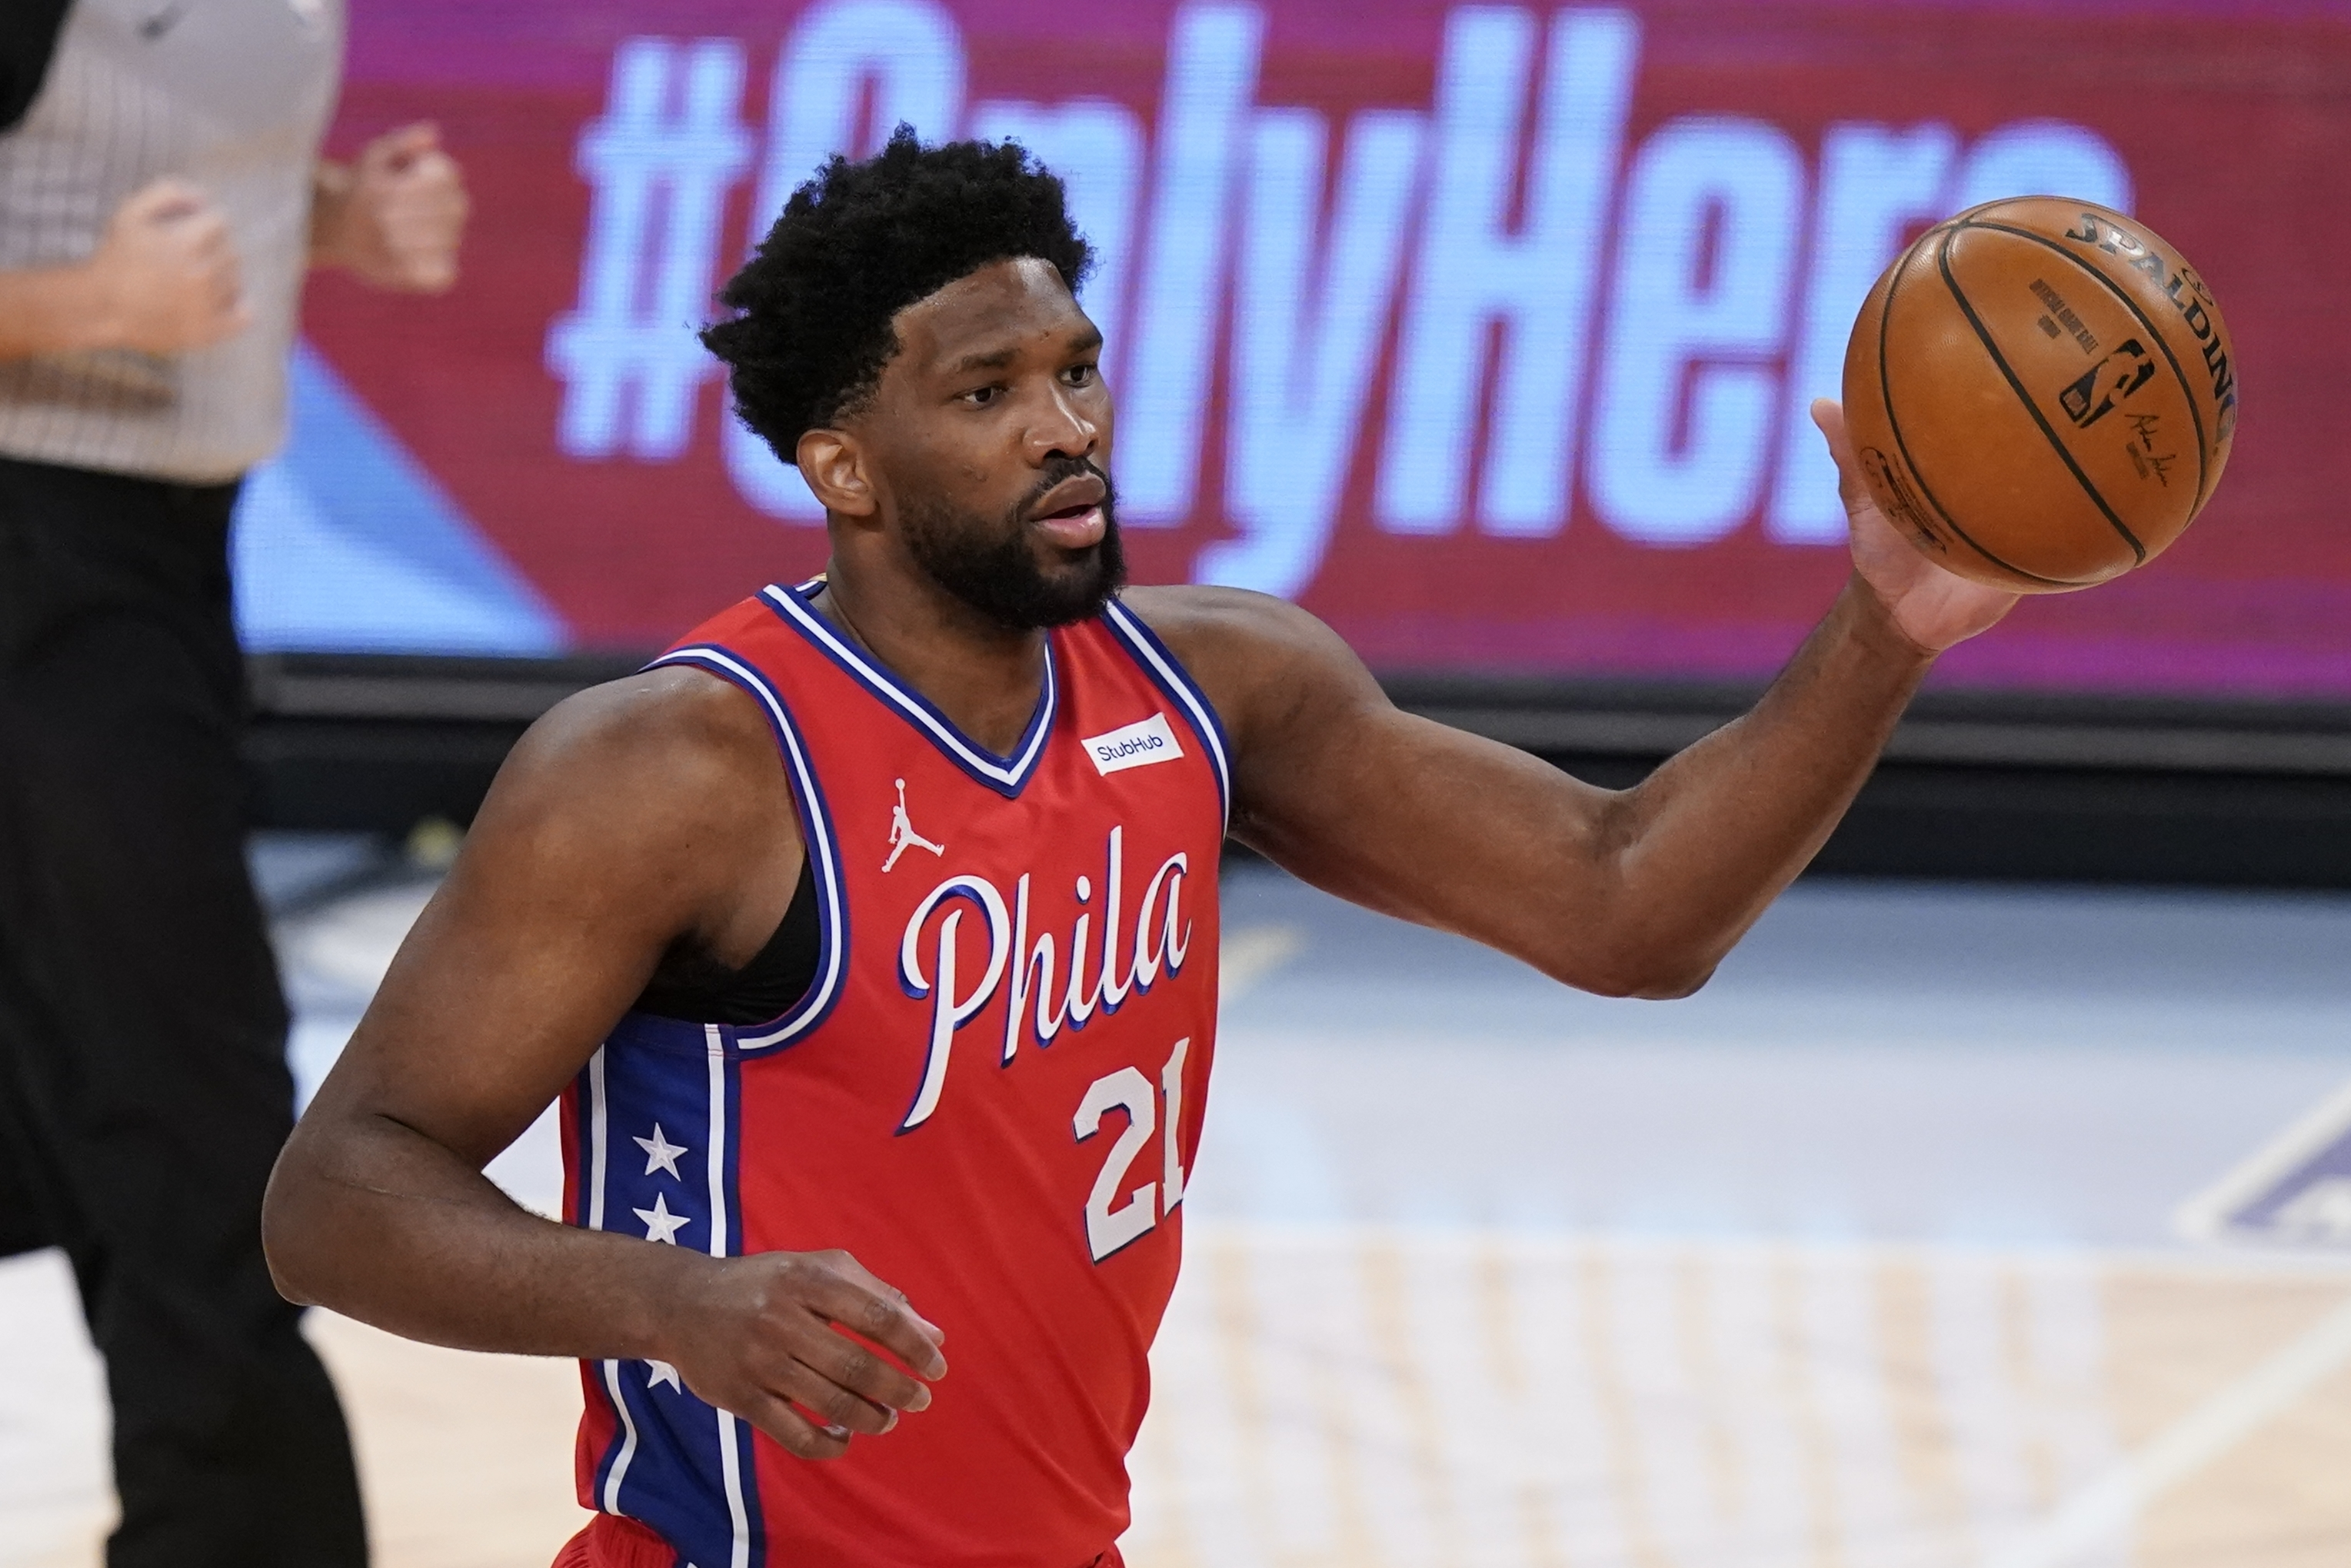 Sixers give injury updates on Joel Embiid, George Hill | When both players could return to practice - nj.com